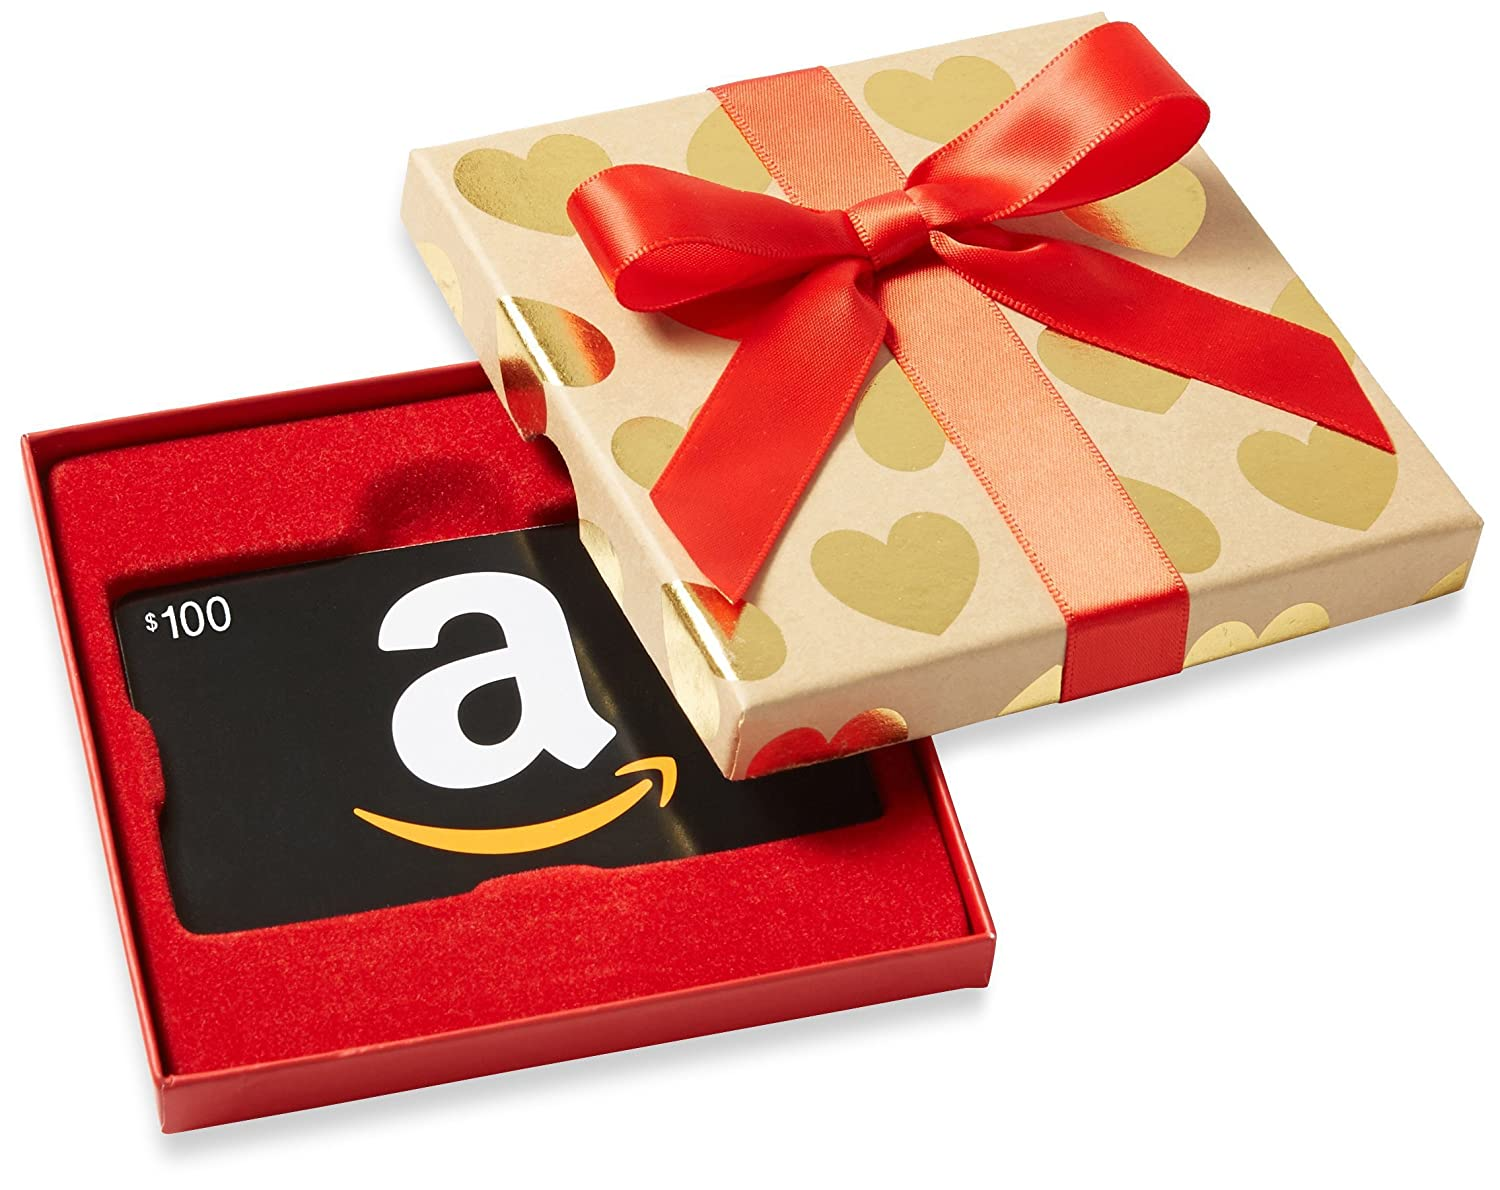 Amazon.ca Gift Card in a Gold Hearts Box Amazon.com.ca Inc. Other case